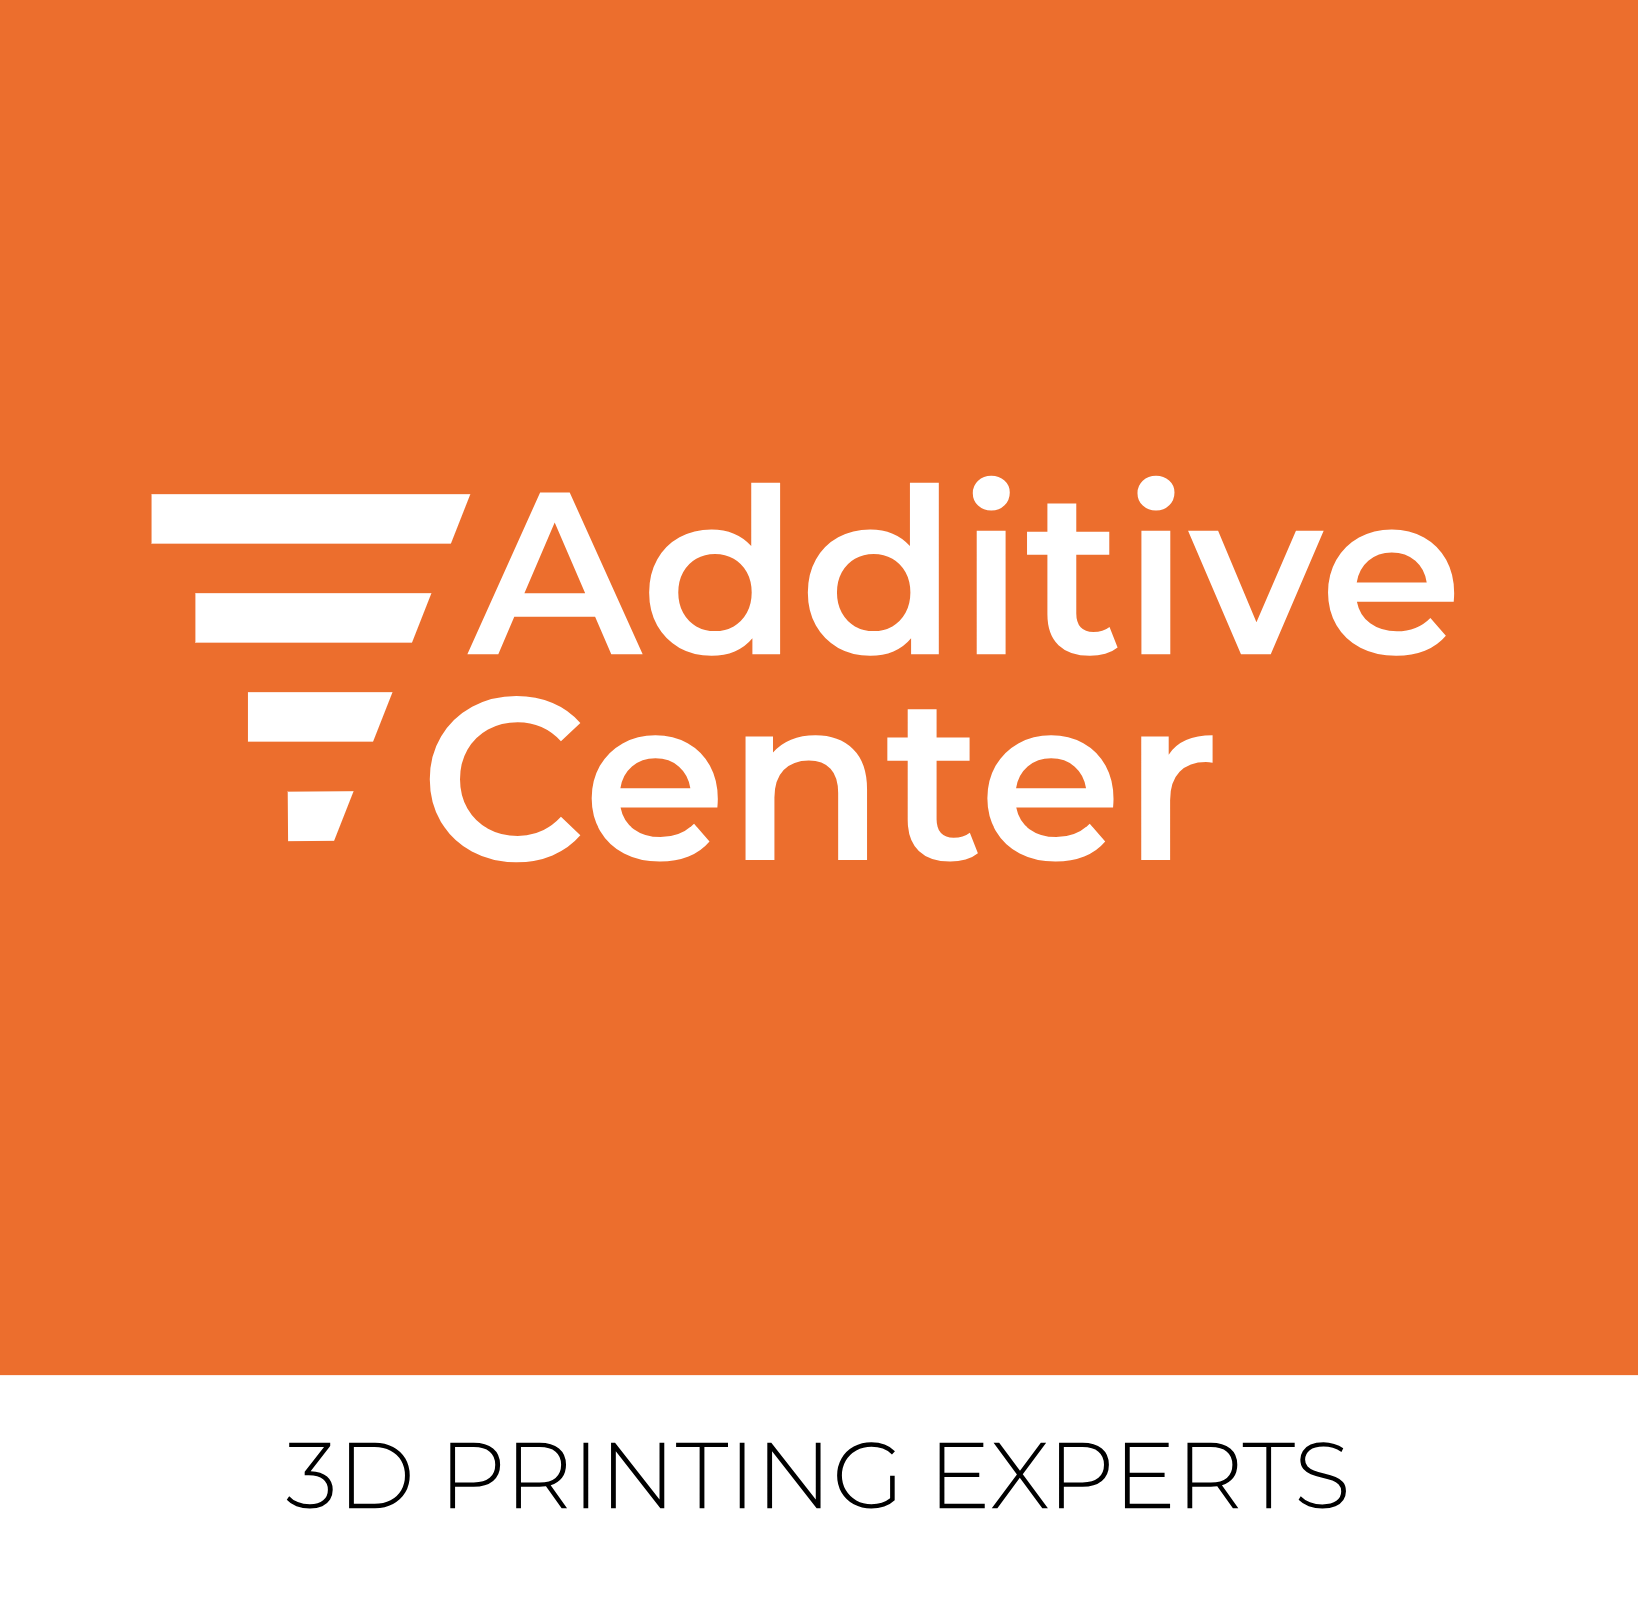 Additive Center logo - Orange - With text